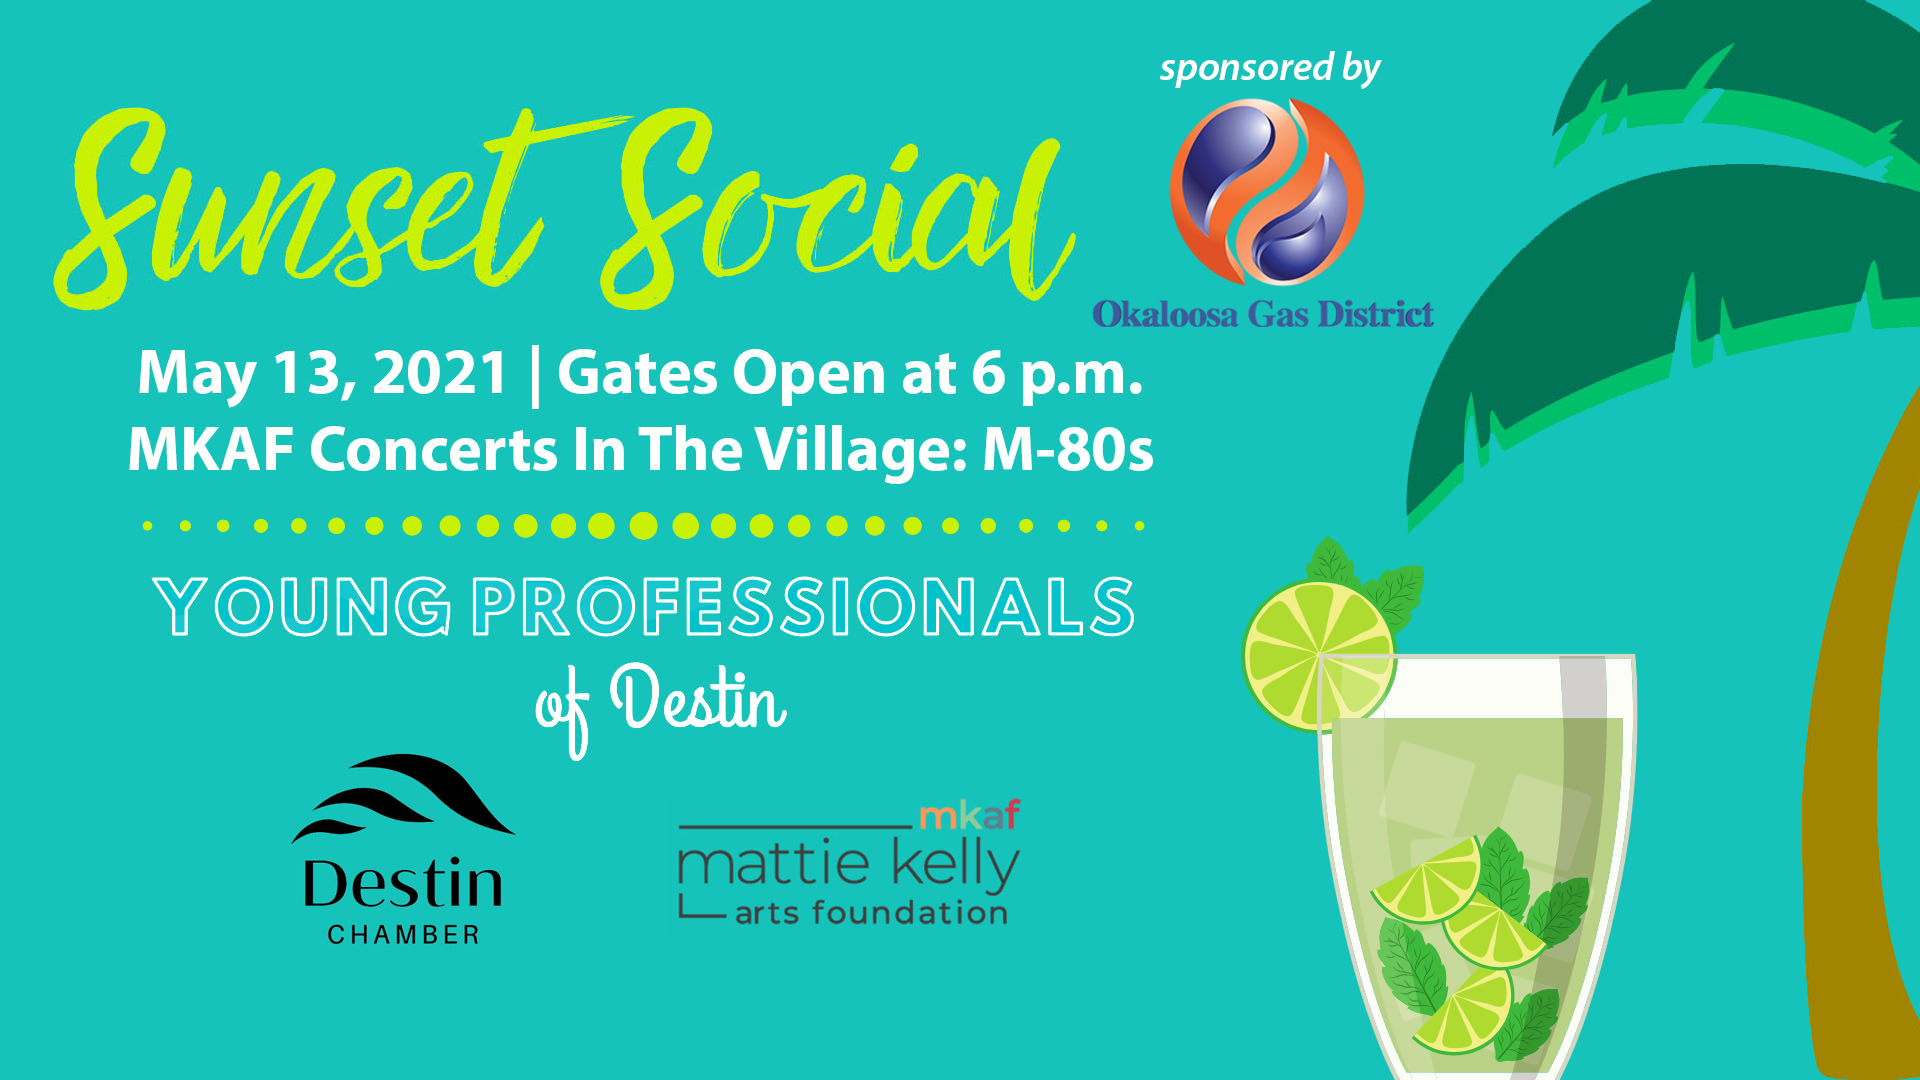 Young Professionals of Destin Sunset Social Okaloosa Gas Mattie Kelly Arts Foundation Concerts In The Village M-80s